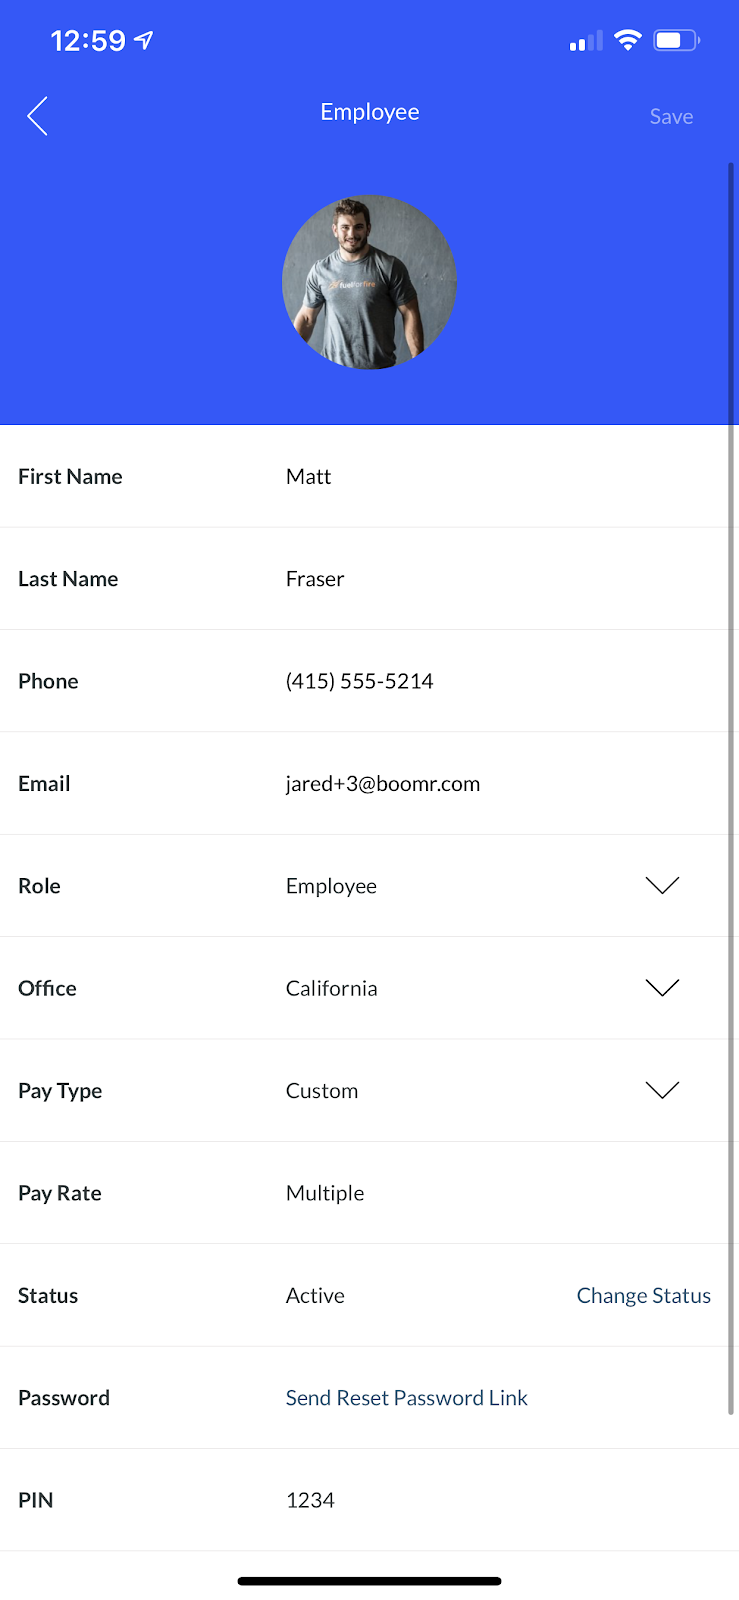 Screenshot showing how to save your employee information in the Employee screen